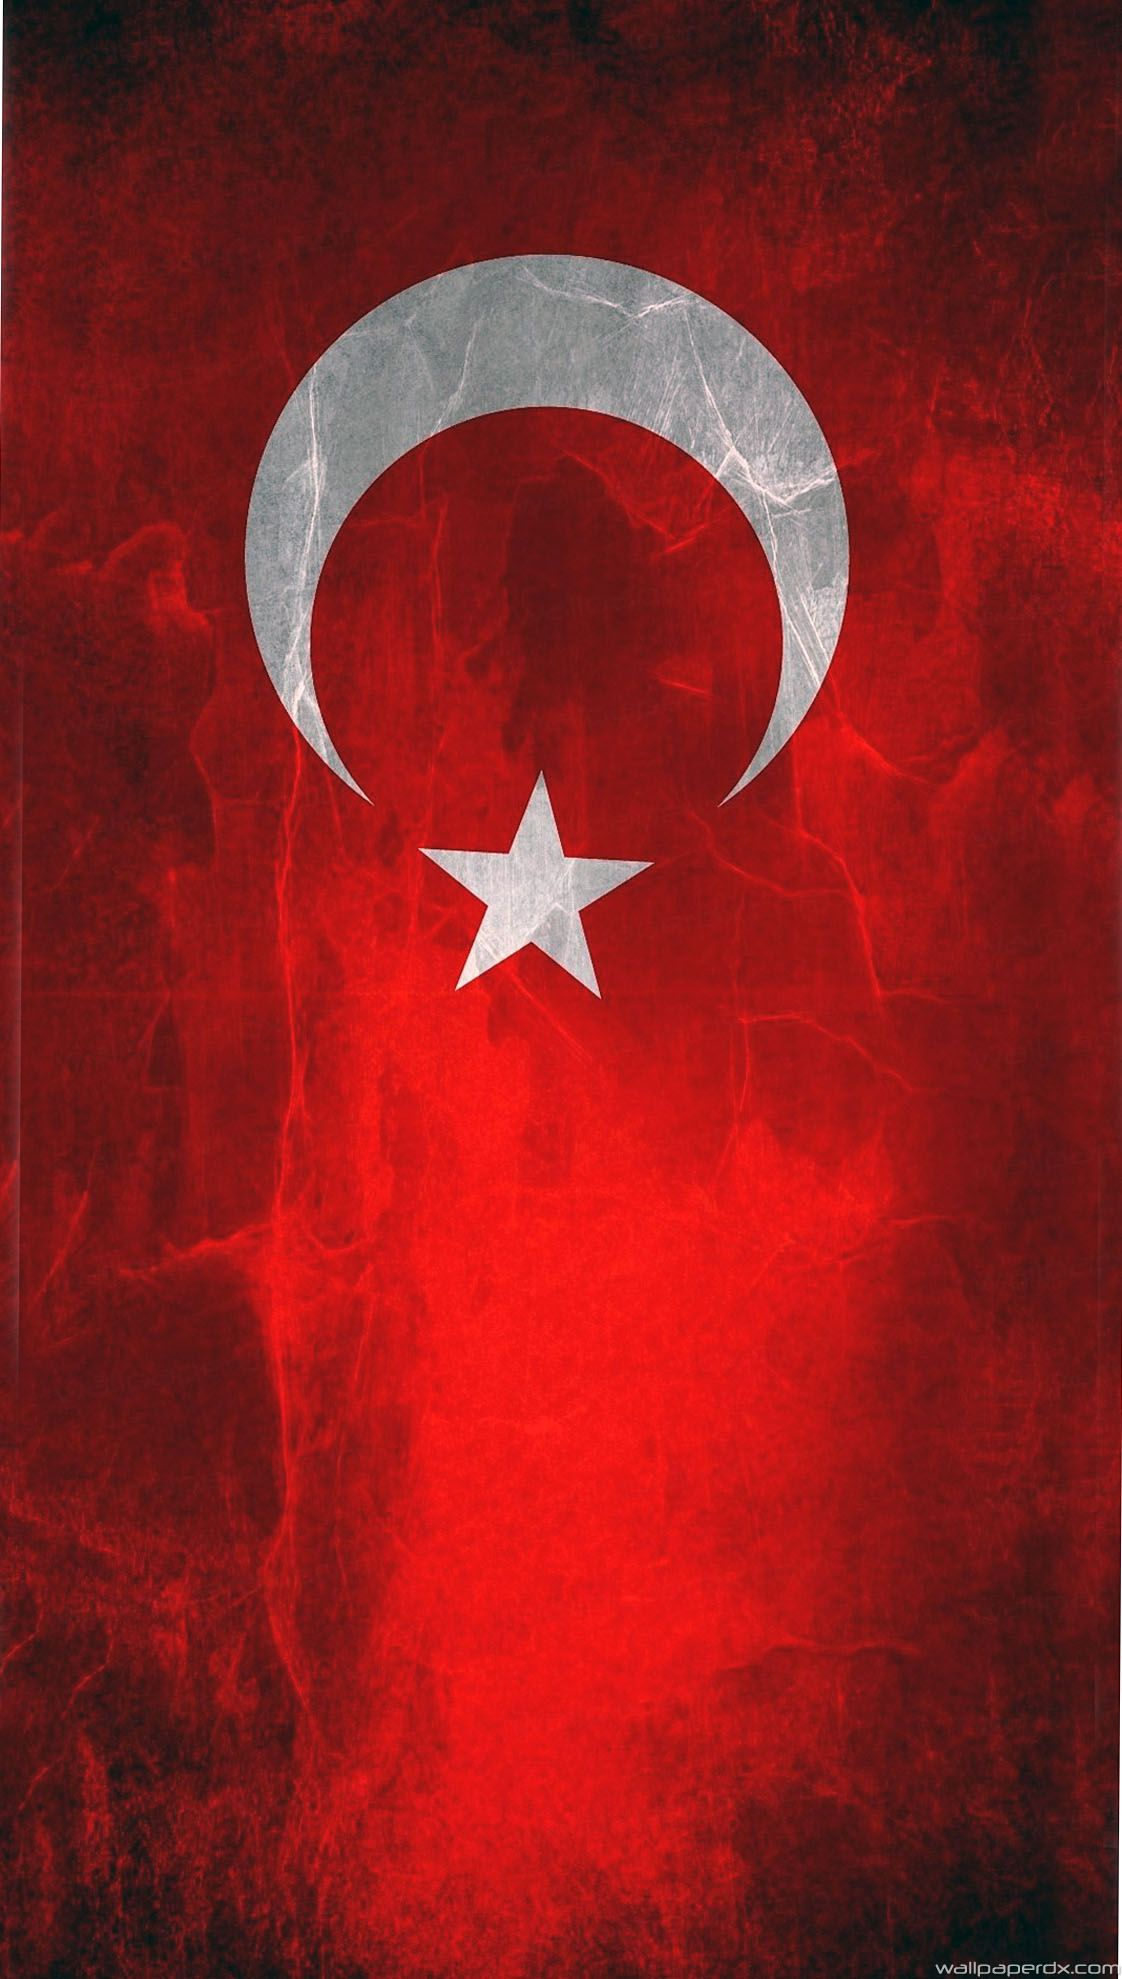 Turkey flag full hd wallpaper 1080p download